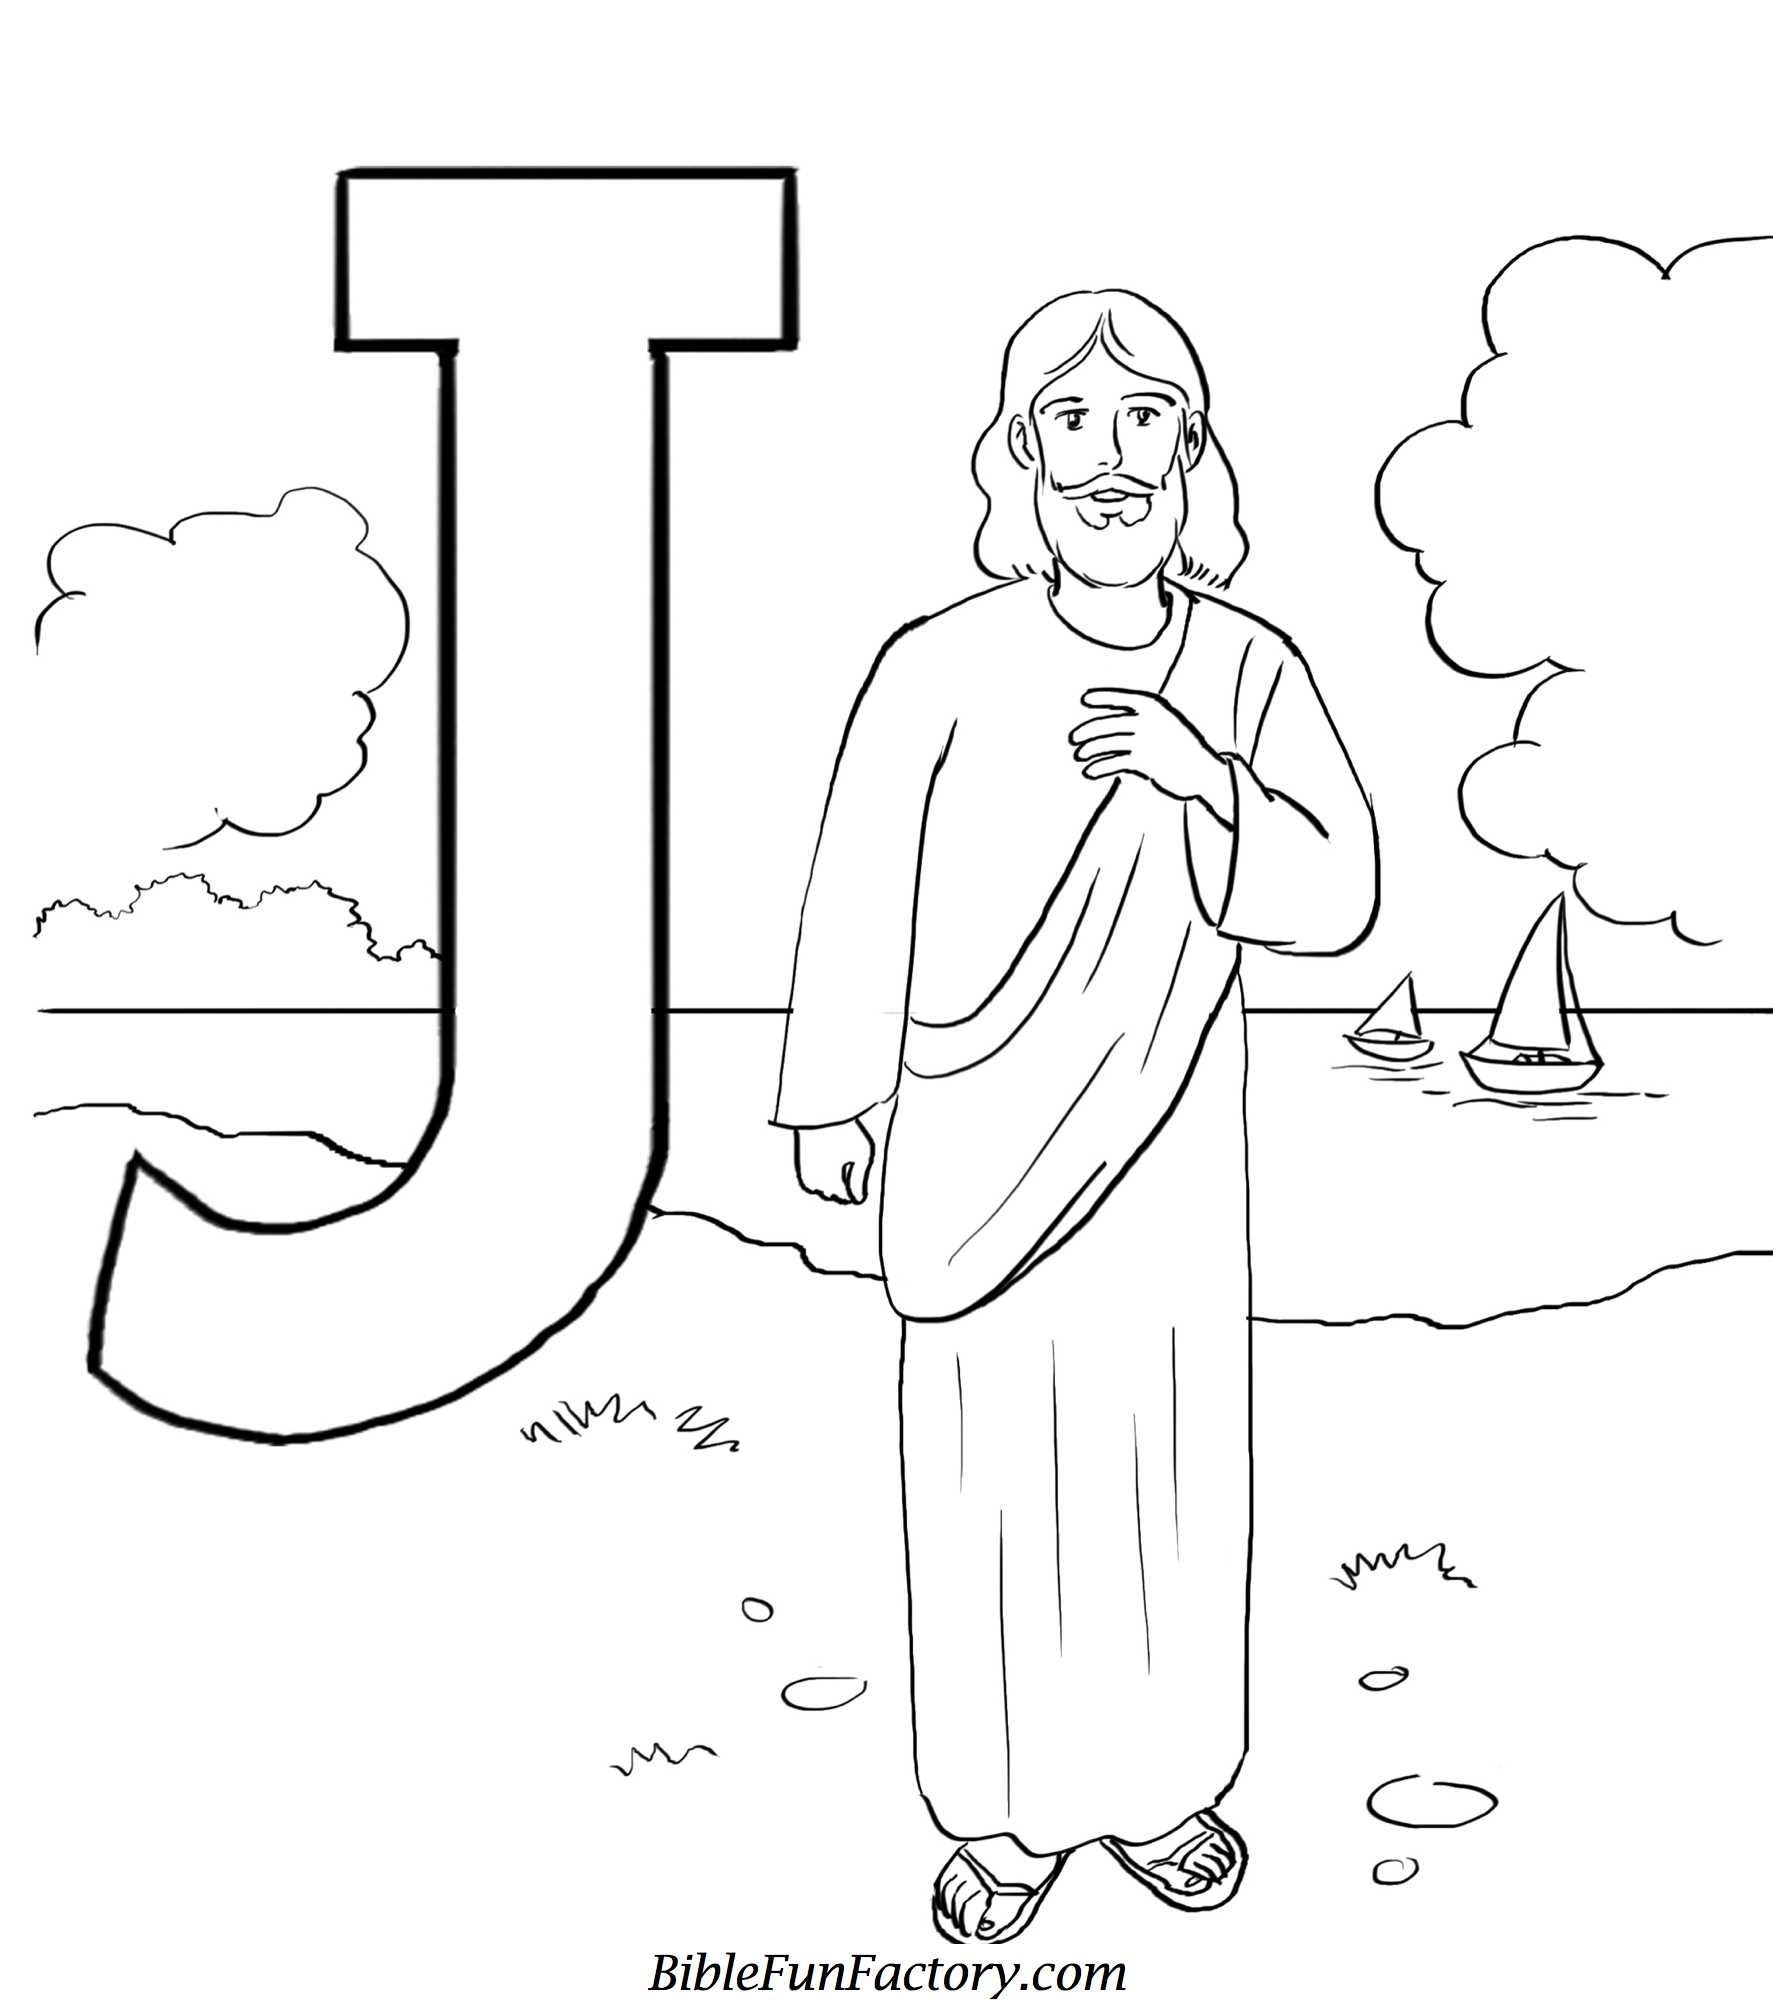 Free printable coloring pages for kids bible - J For Jesus Coloring Page Free Online Printable Coloring Pages Sheets For Kids Get The Latest Free J For Jesus Coloring Page Images Favorite Coloring